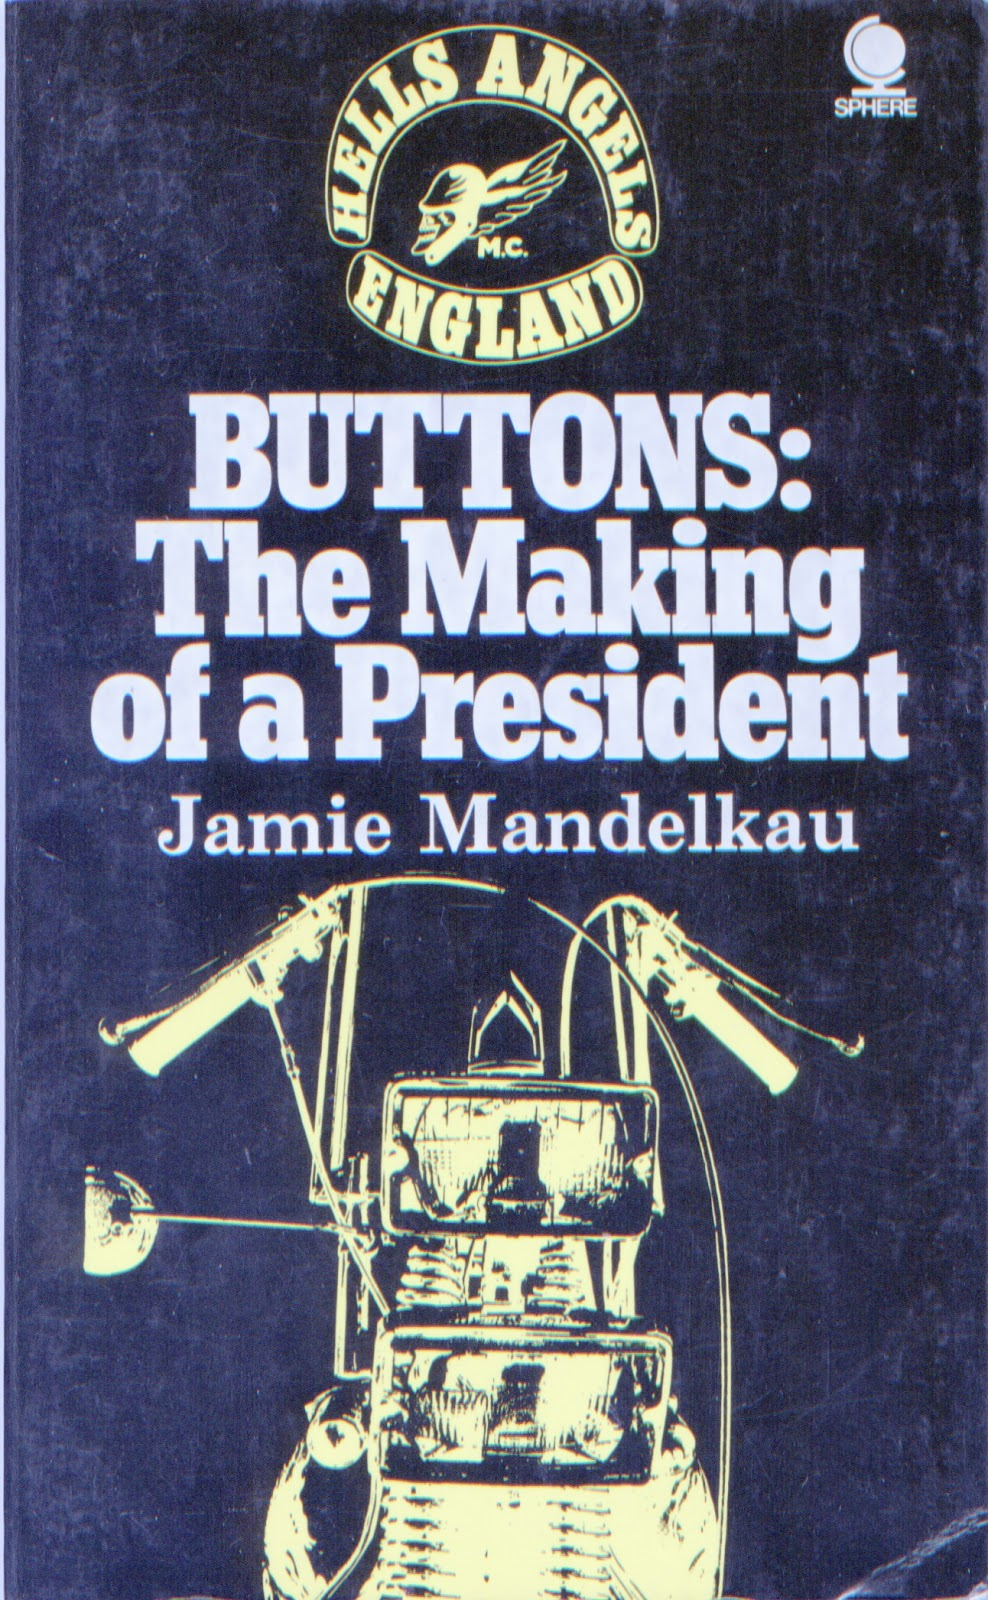 Aggravation Place: Buttons – The Making of a President by